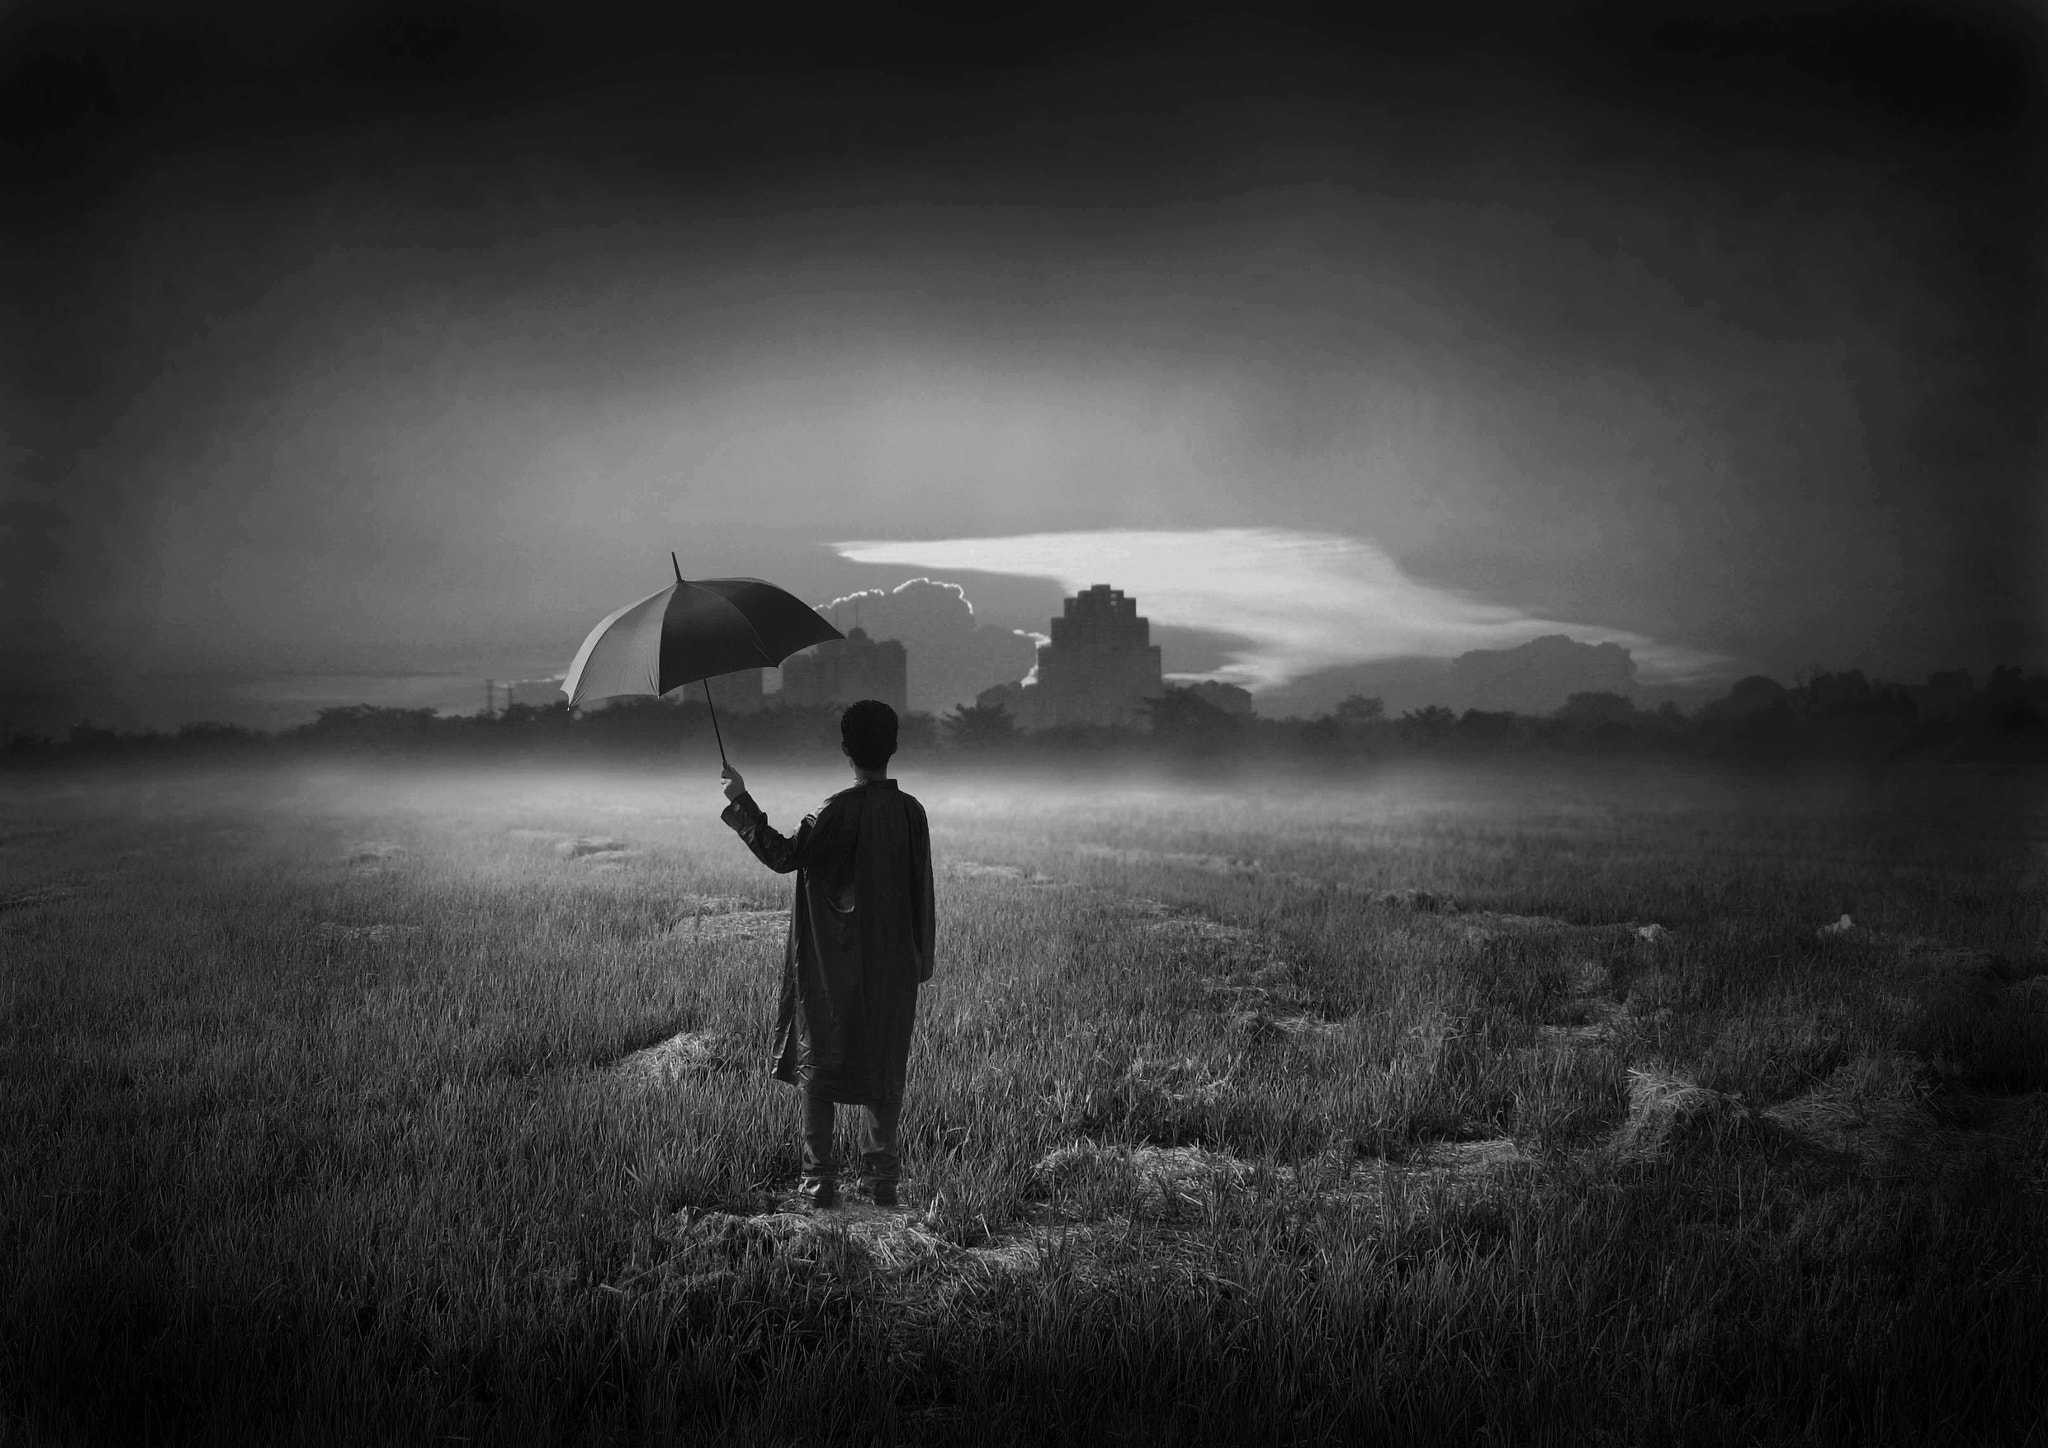 Photograph The Payung Man by Meor Hasmadi on 500px